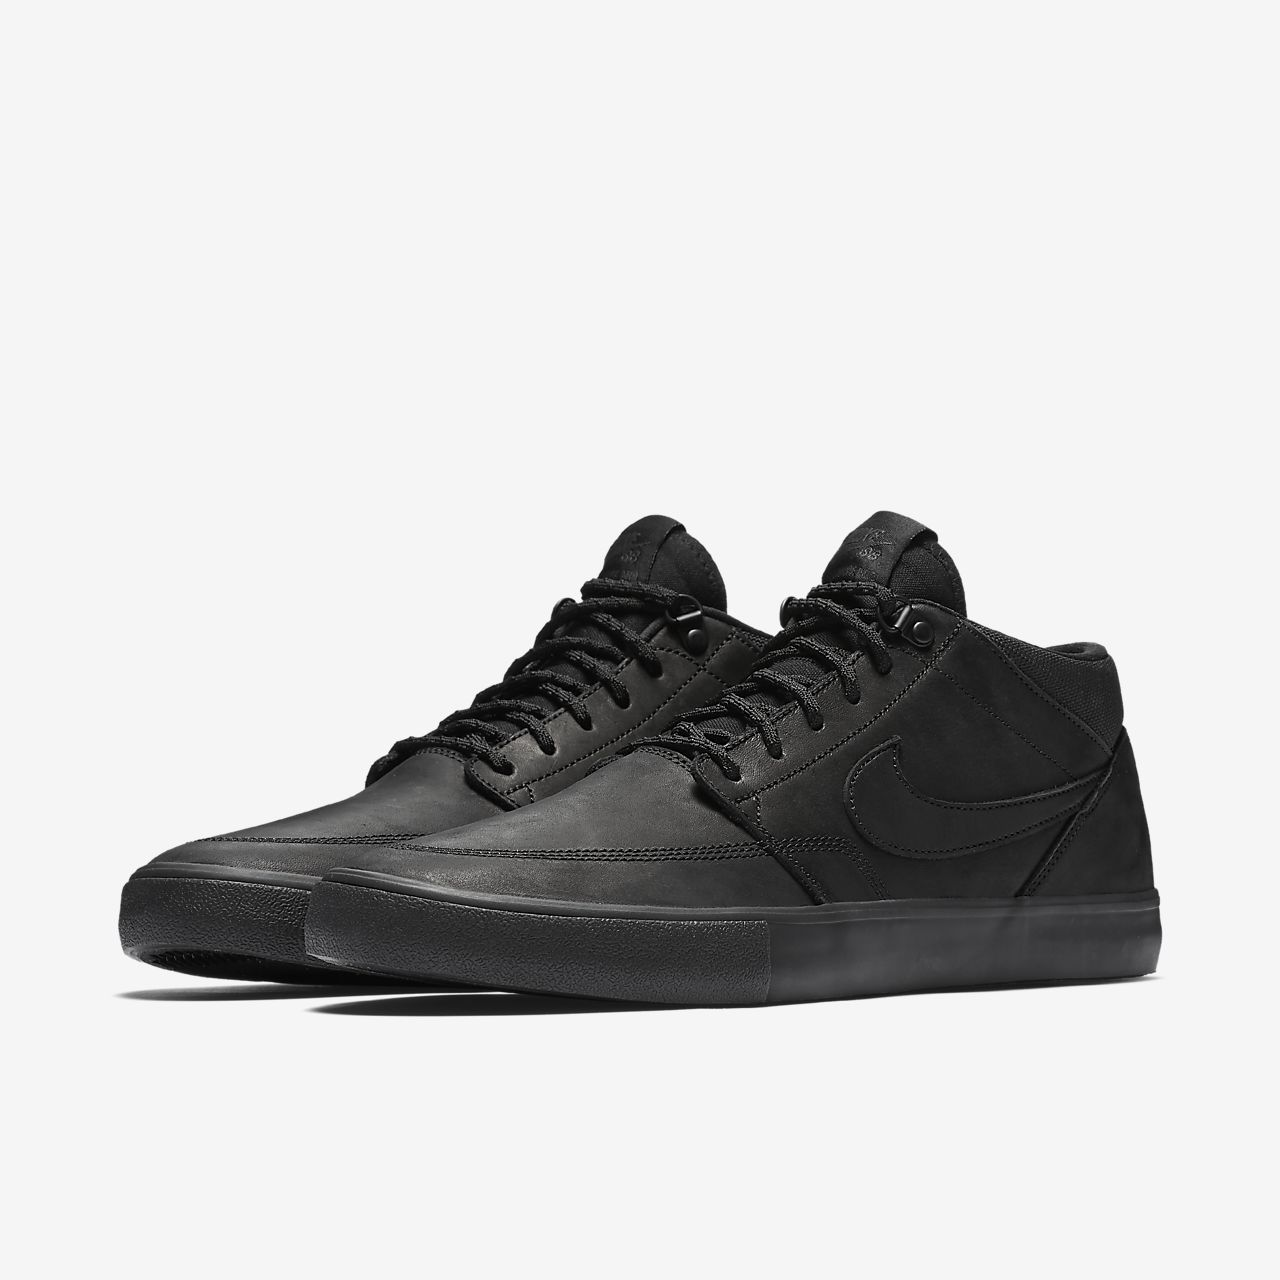 low priced b66f4 42ef3 Chaussure de skateboard Nike SB Solarsoft Portmore II Mid Premium pour Homme